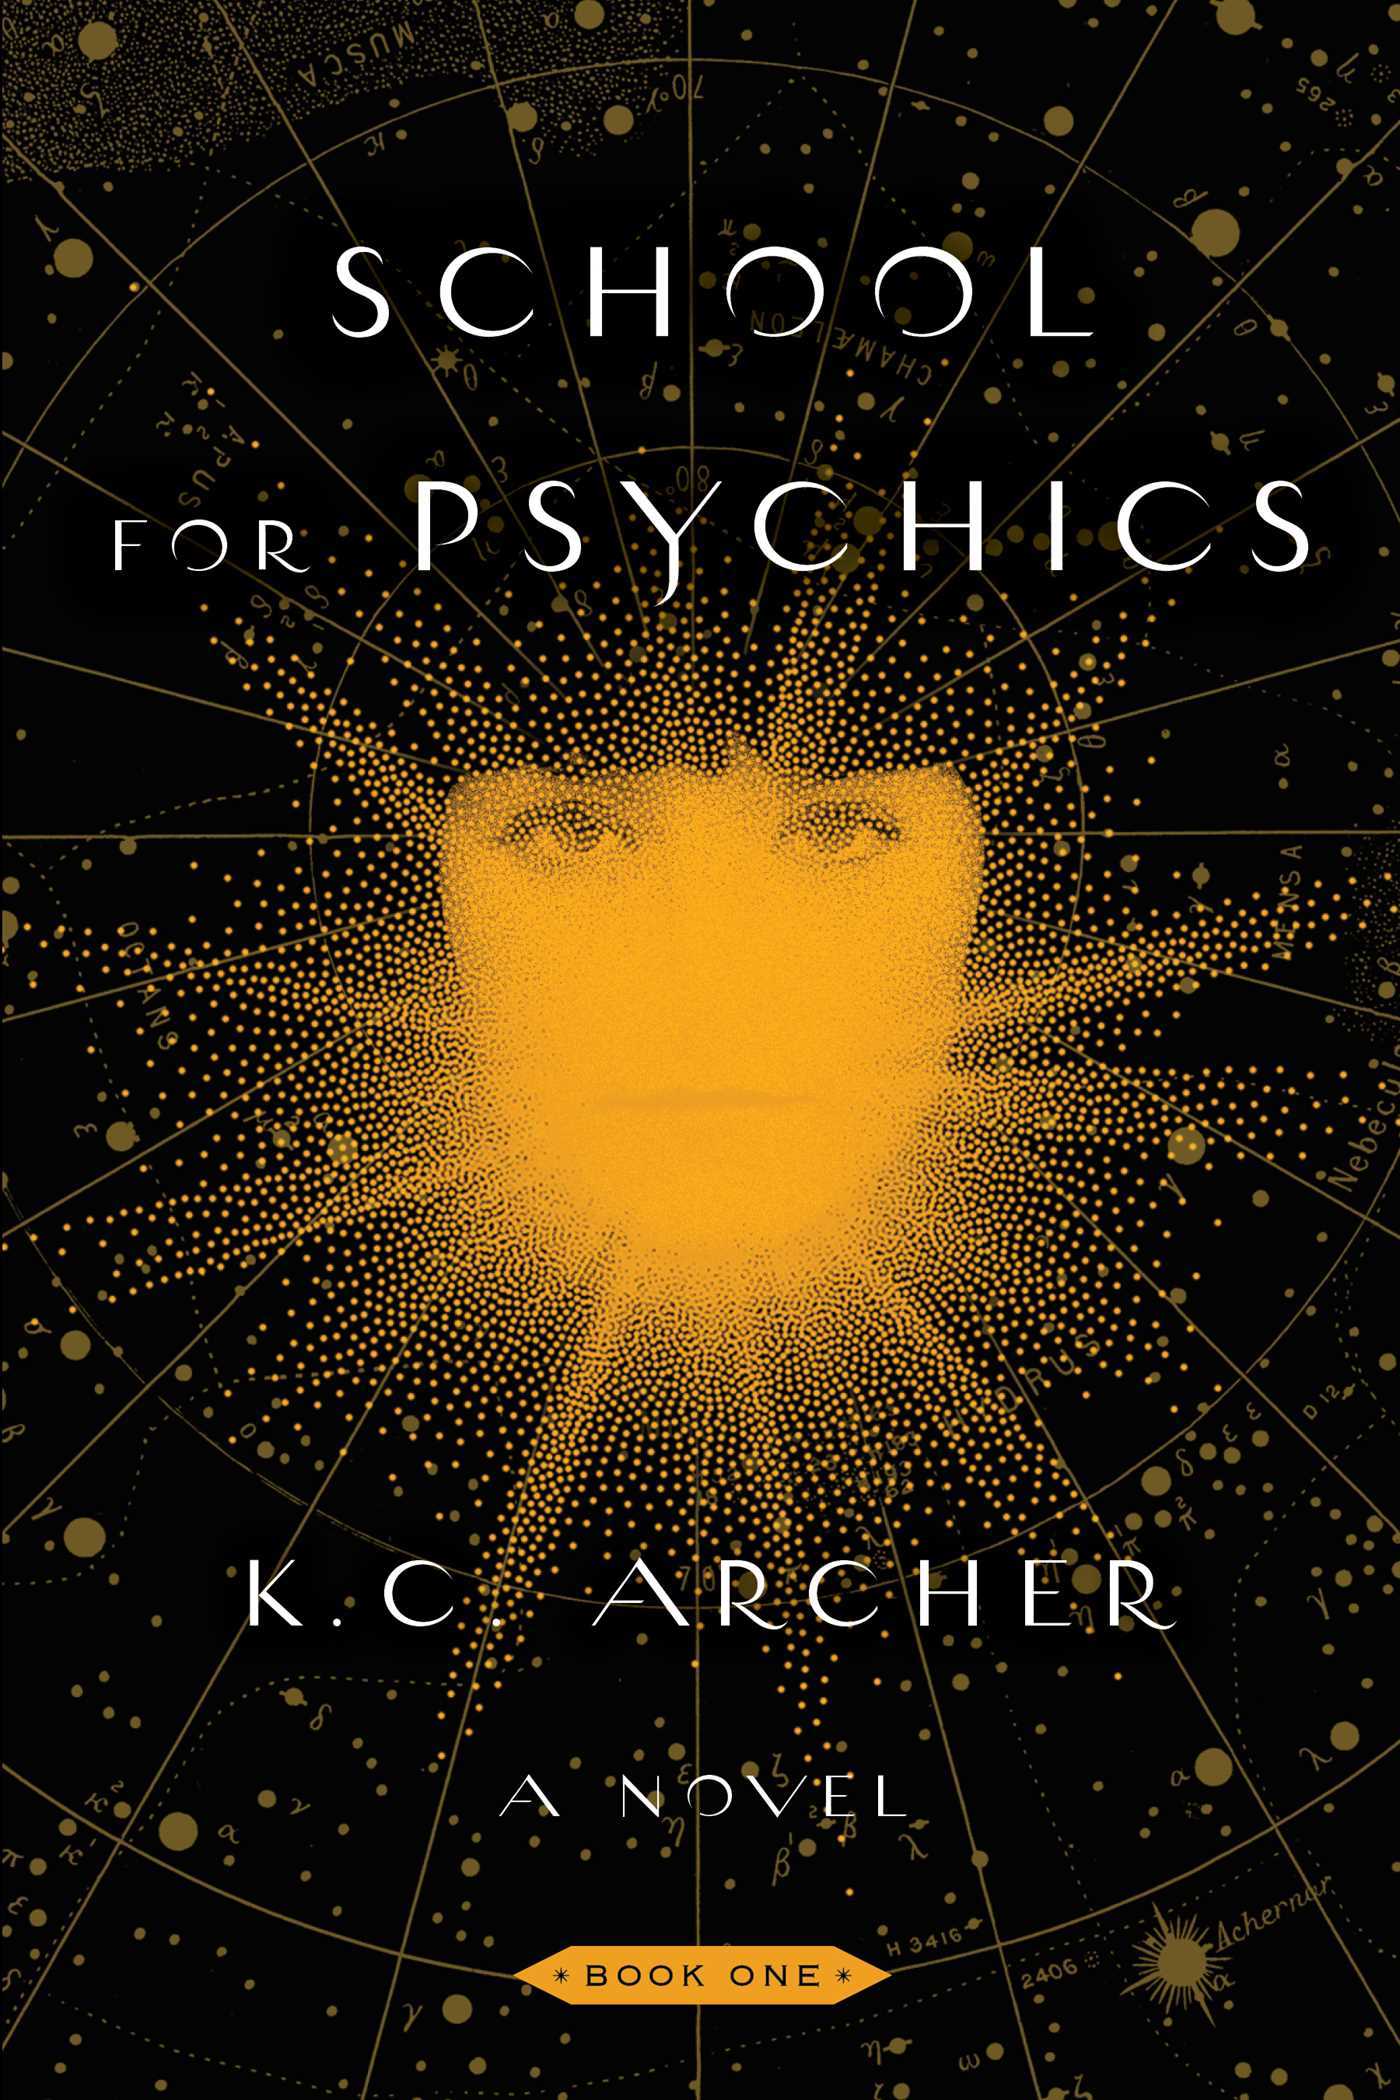 Book Cover Image (jpg): School for Psychics